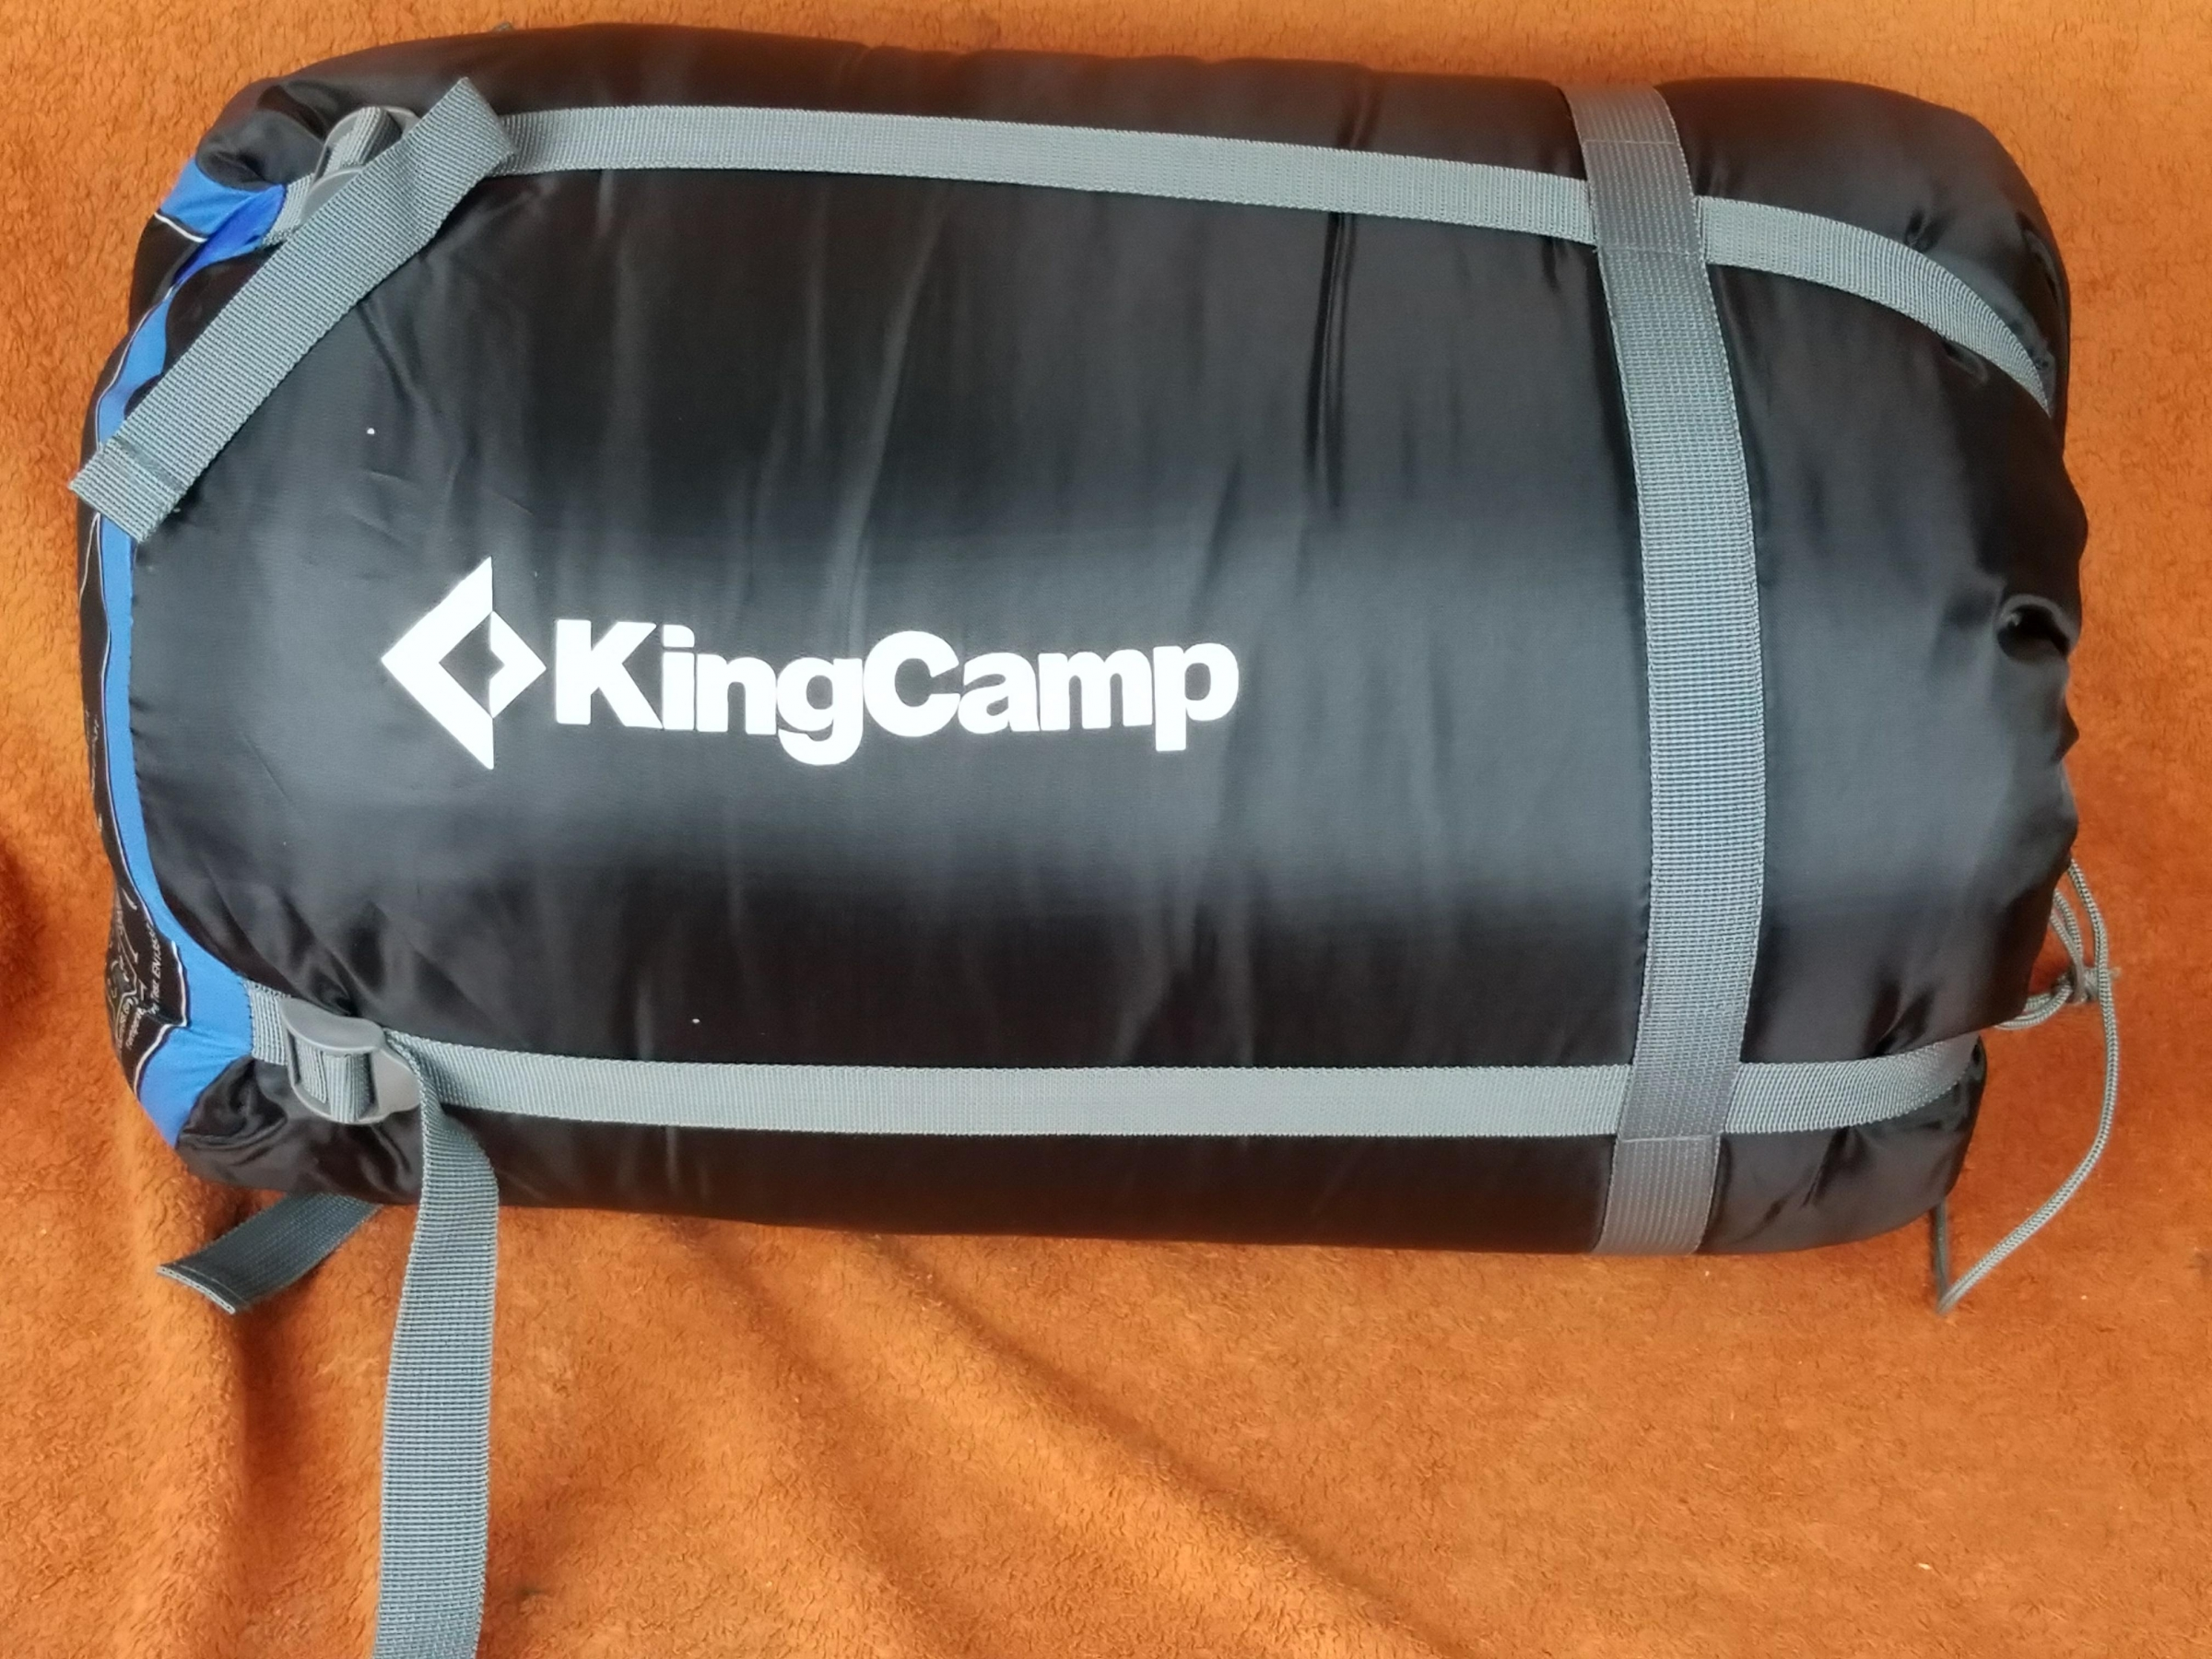 Cozy, super warm blue queen sized sleeping bag can fit 2 people or be seperated to make 2 regular sleeping bags, comes with pillows & compression bag.